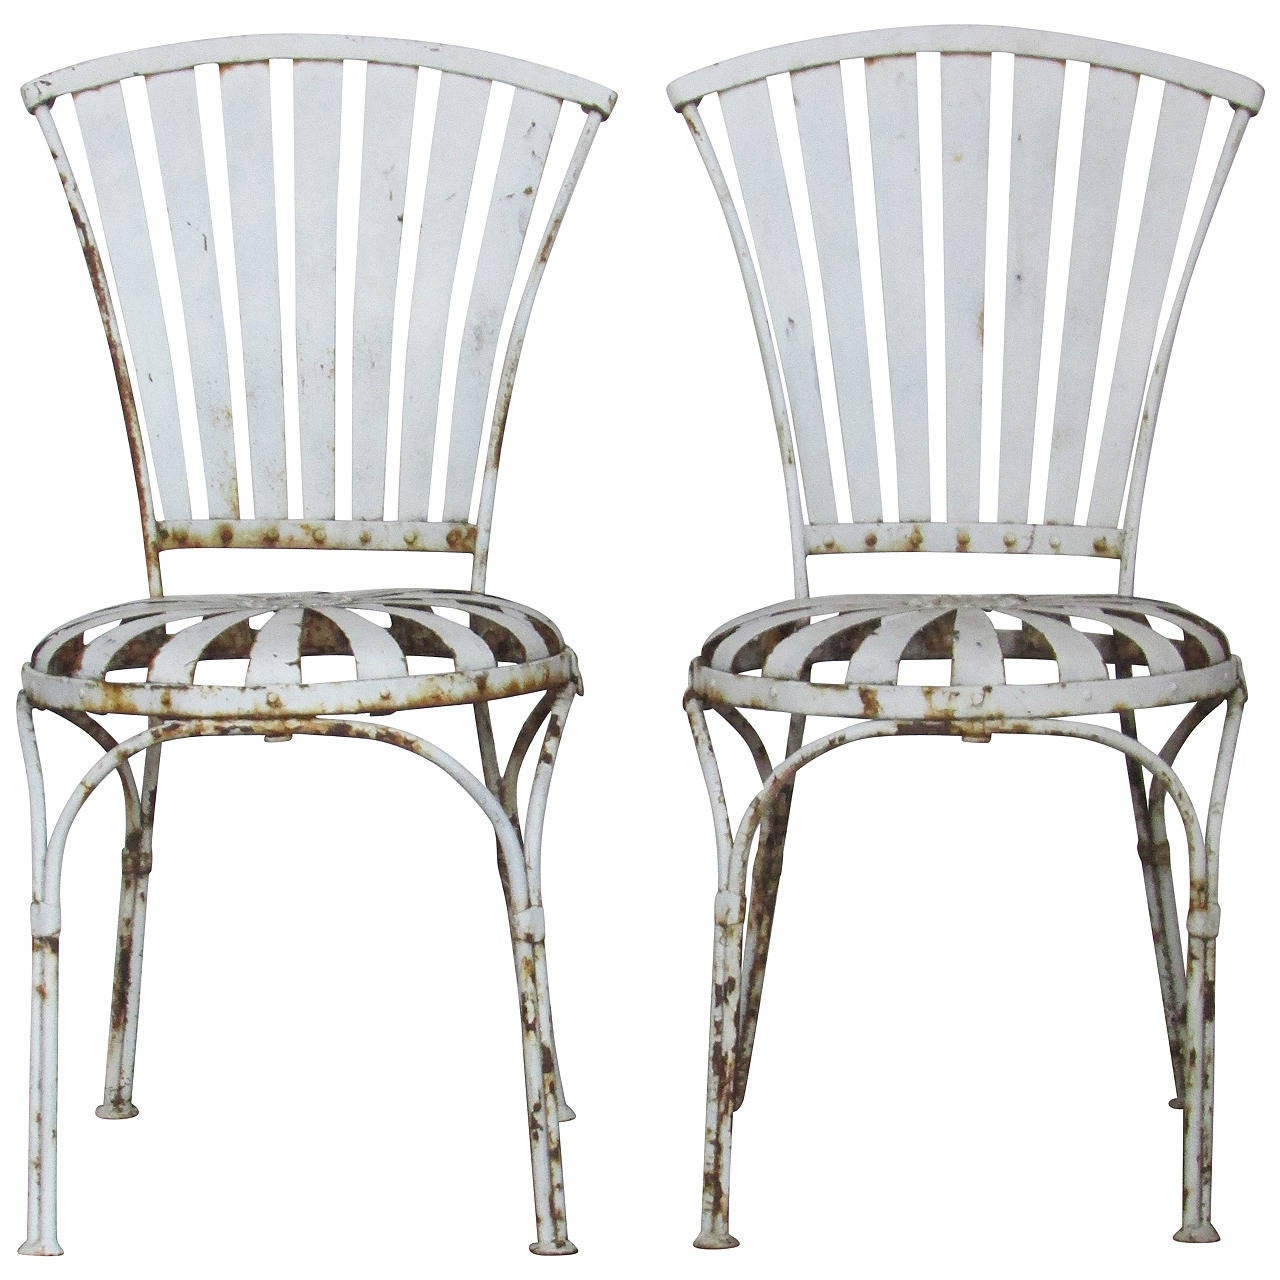 sprung steel garden chairs by francois carre 1 - Garden Furniture Steel